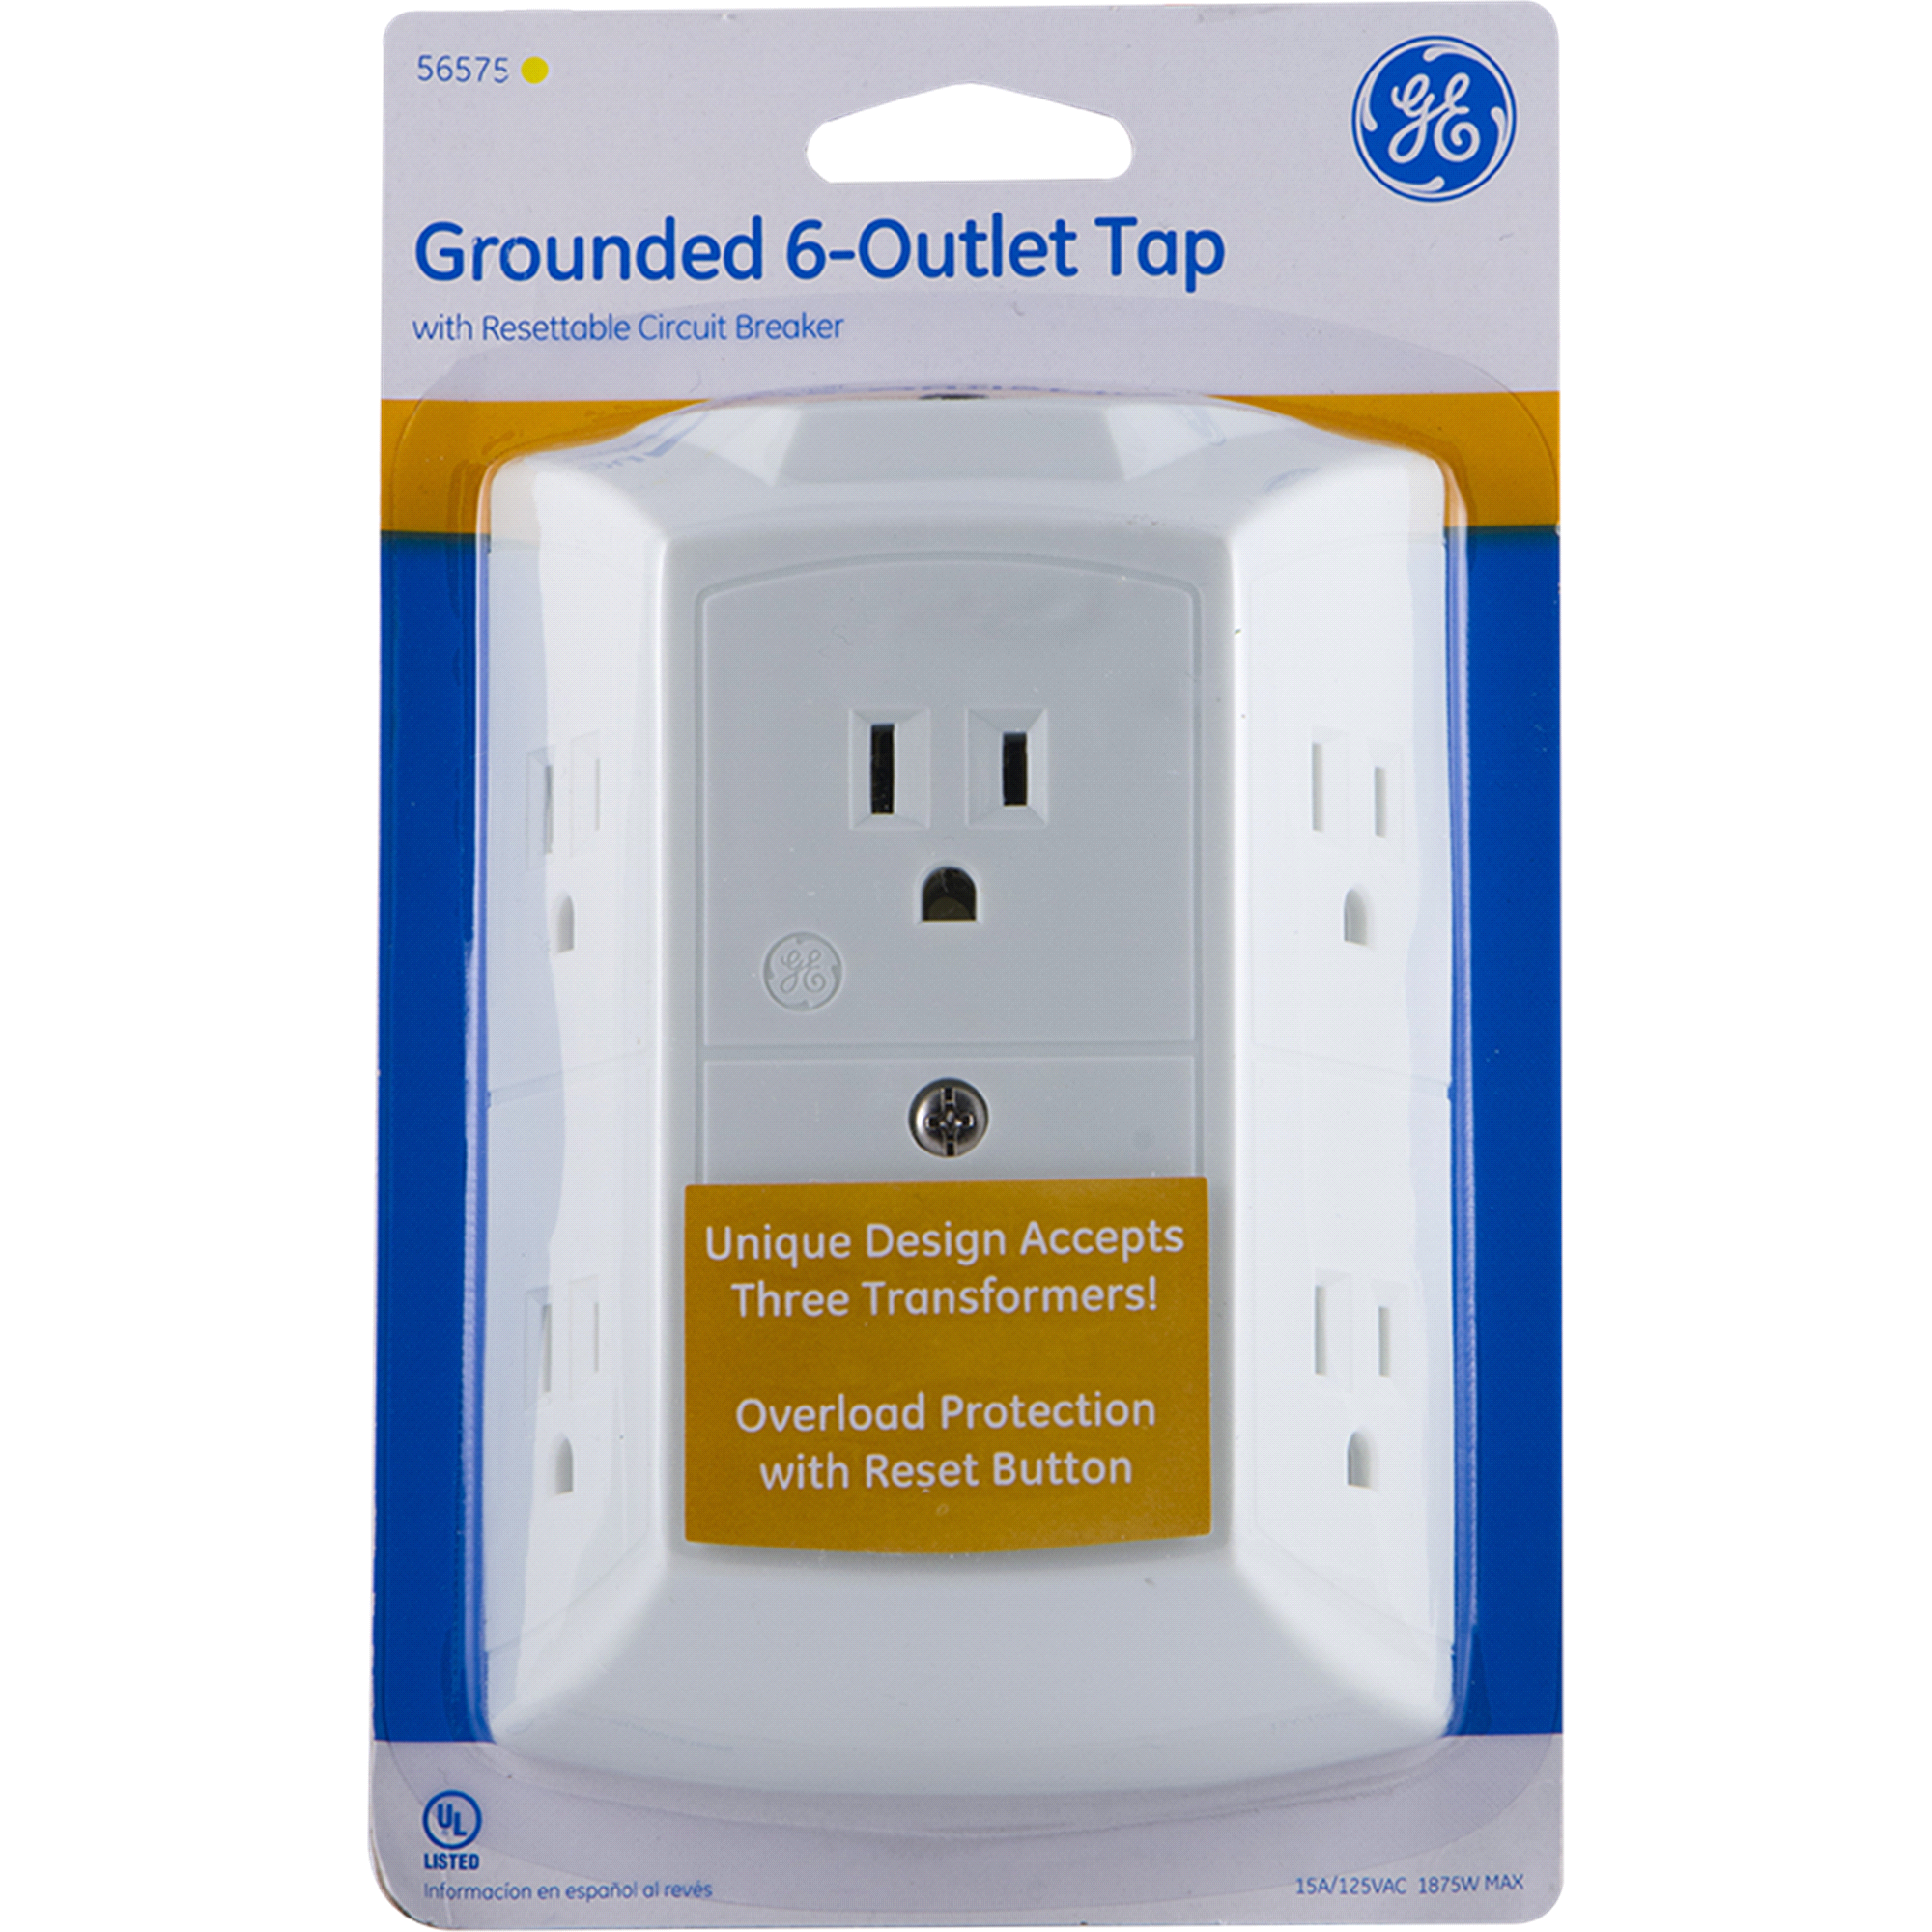 GE Grounded 6 Outlet Tap with Resettable Circuit Breaker   Meijer.com